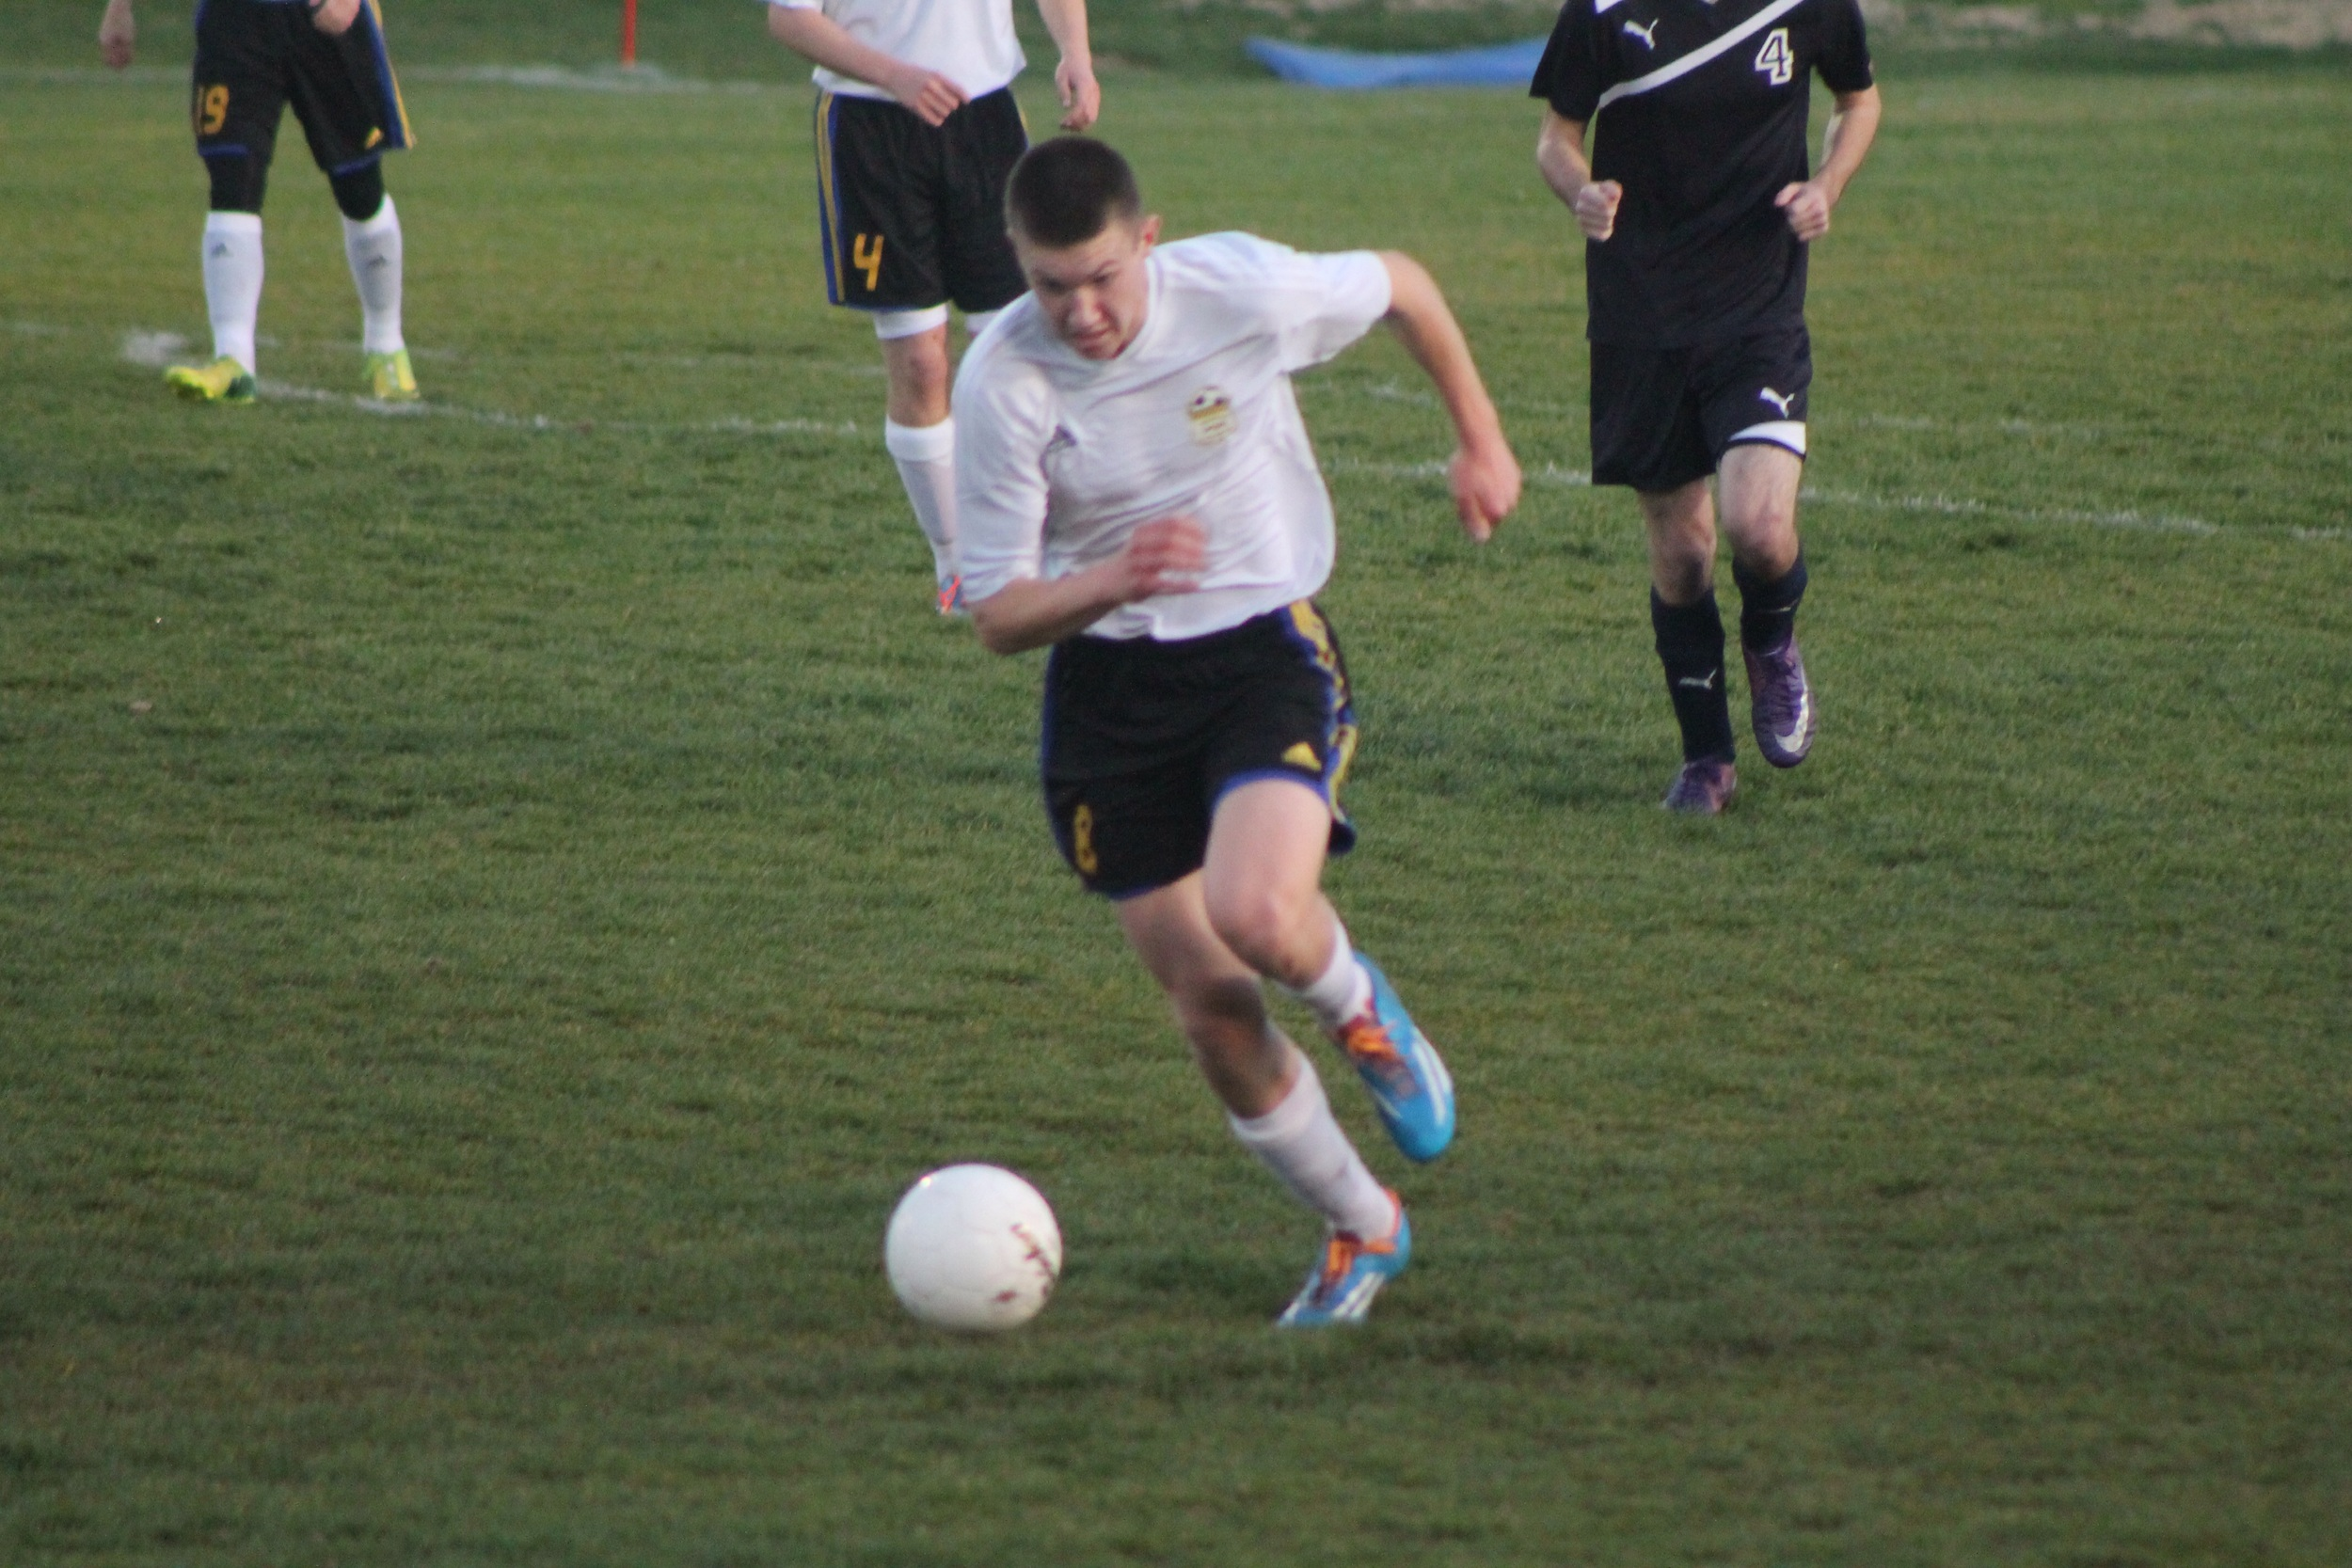 (Photo by Jared Routon) Grant Erickson pushes the ball up the field.